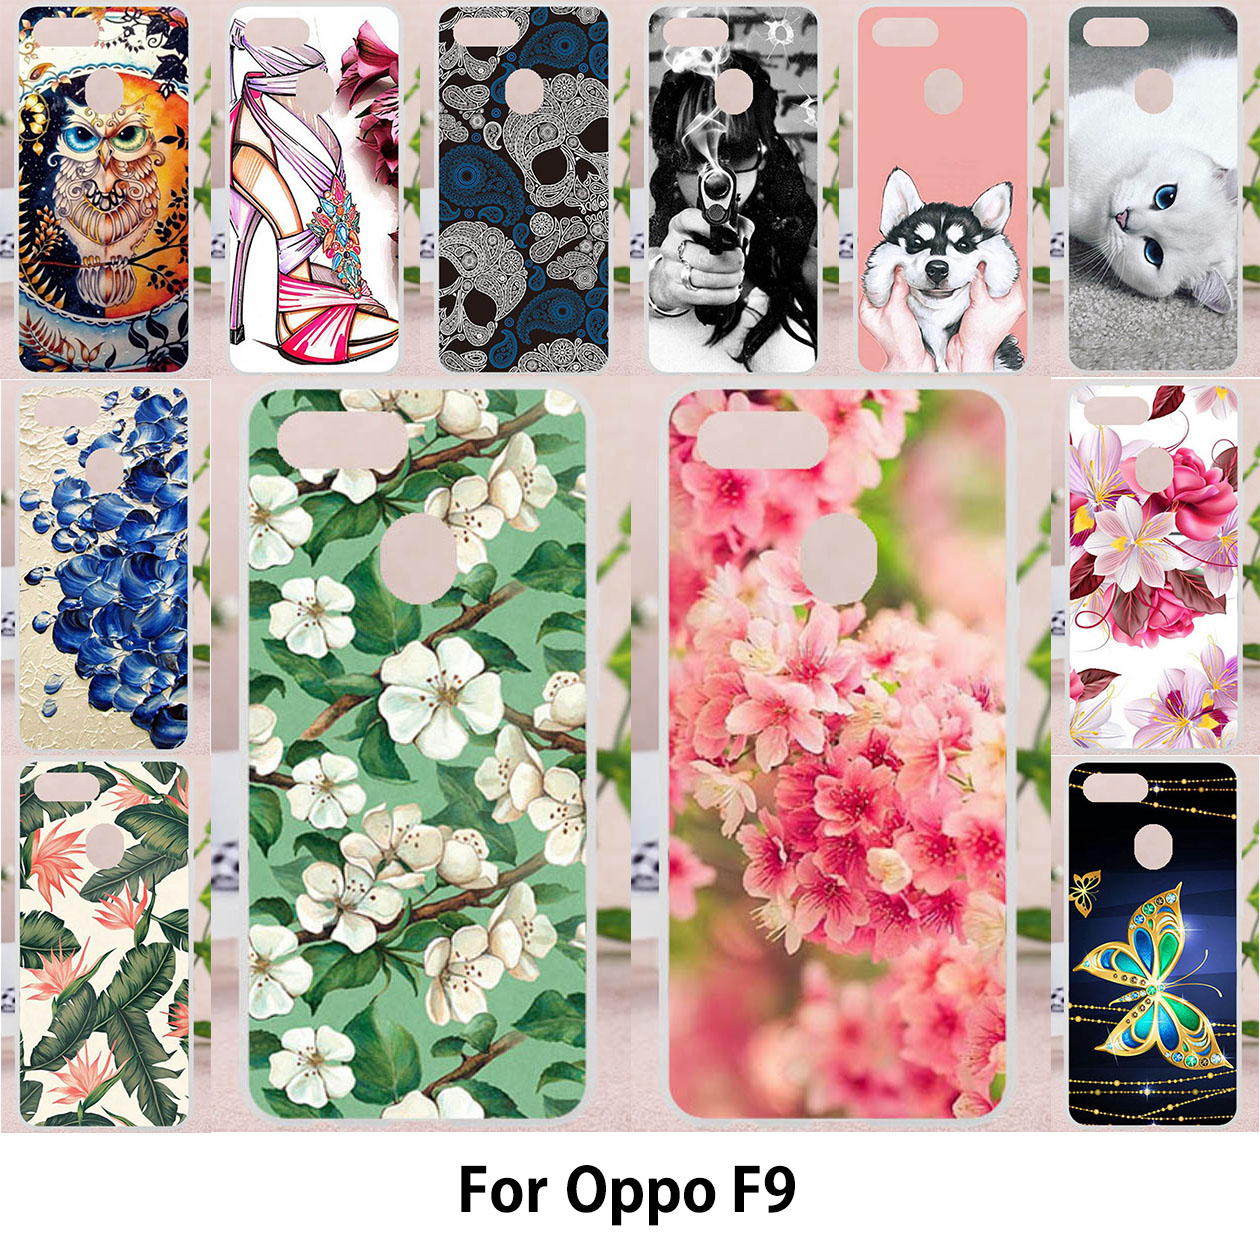 Cases For Oppo F9 Covers For Oppo F9 Pro Soft Silicone Painted Bags 6.3 Inch Patterned Back Covers Skins Shell Housings